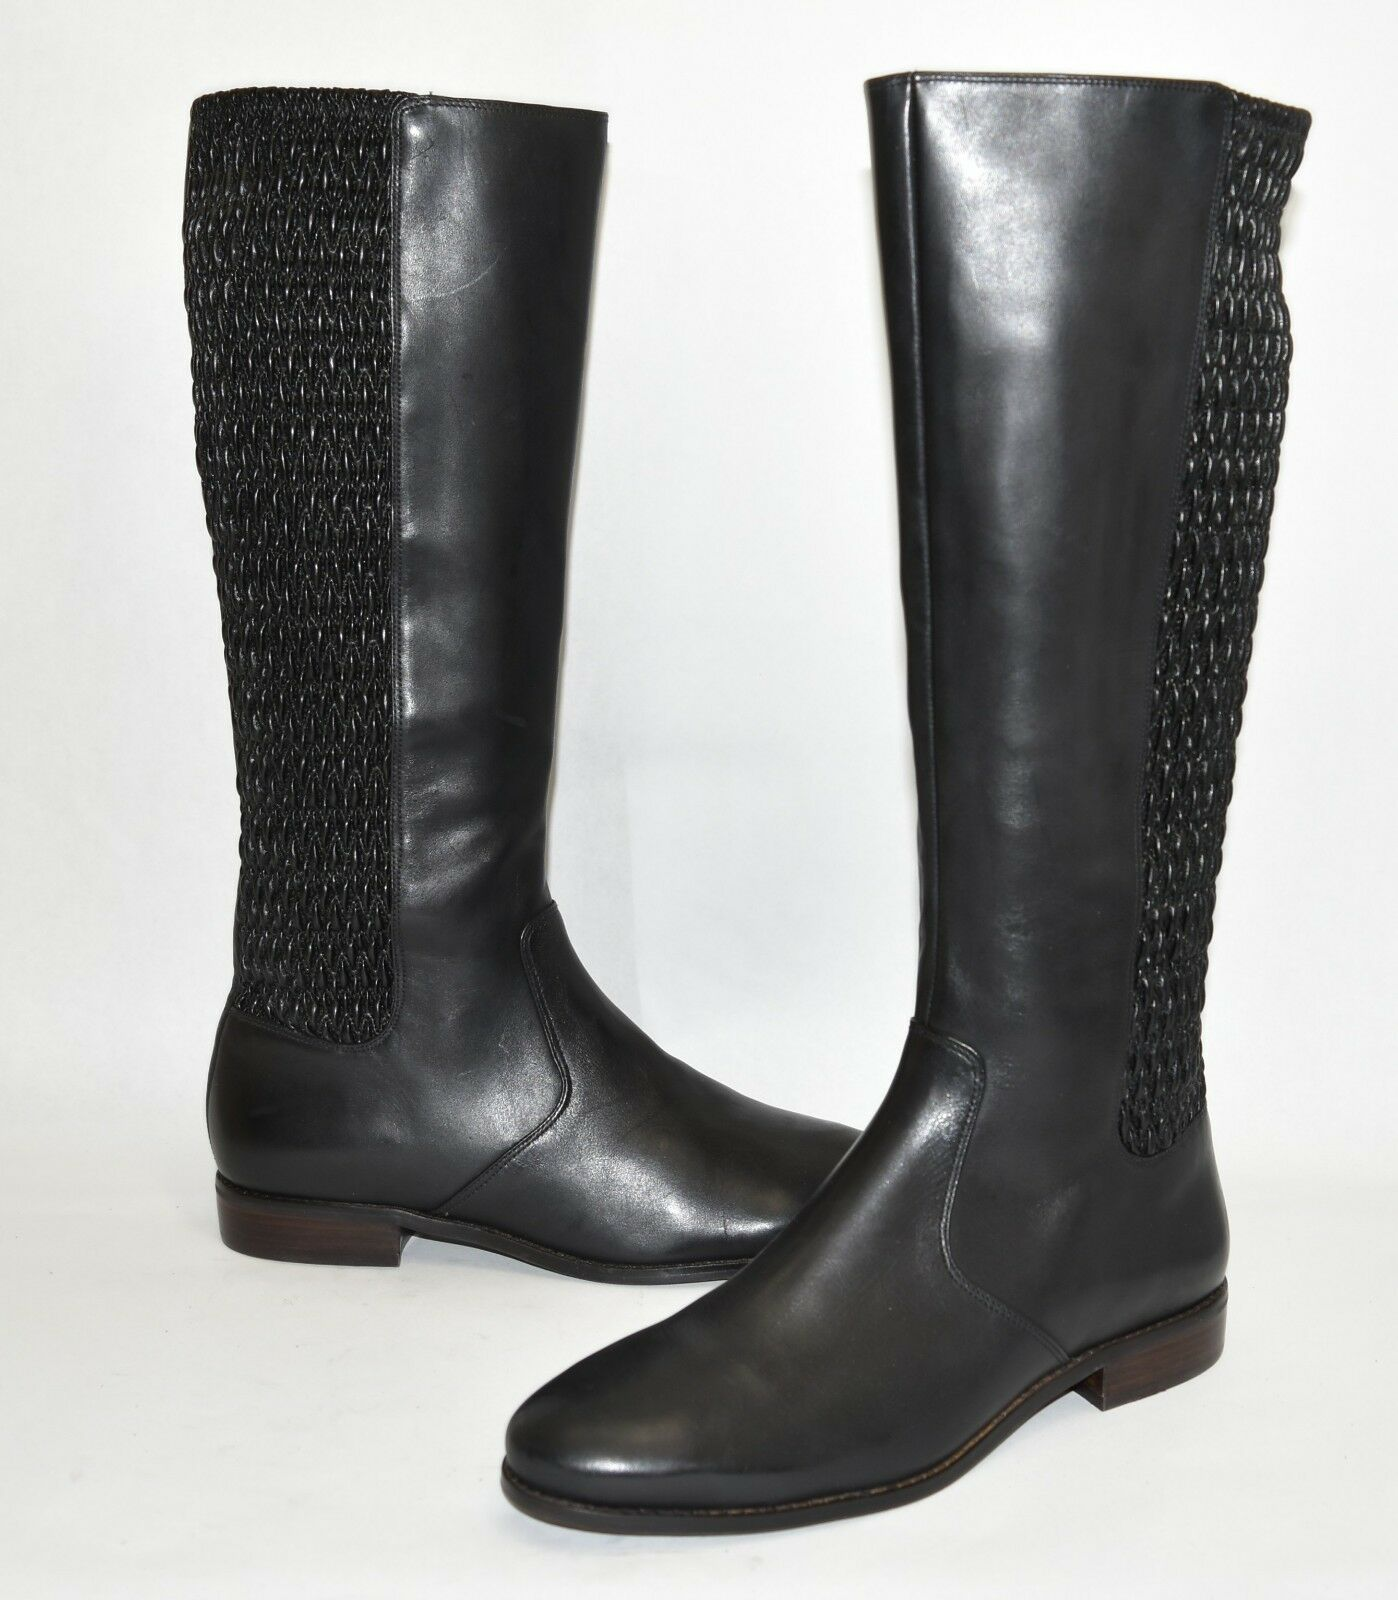 New  Cole Haan Elgreenon Knee High Boot Black Leather Size 10.5 B W03573